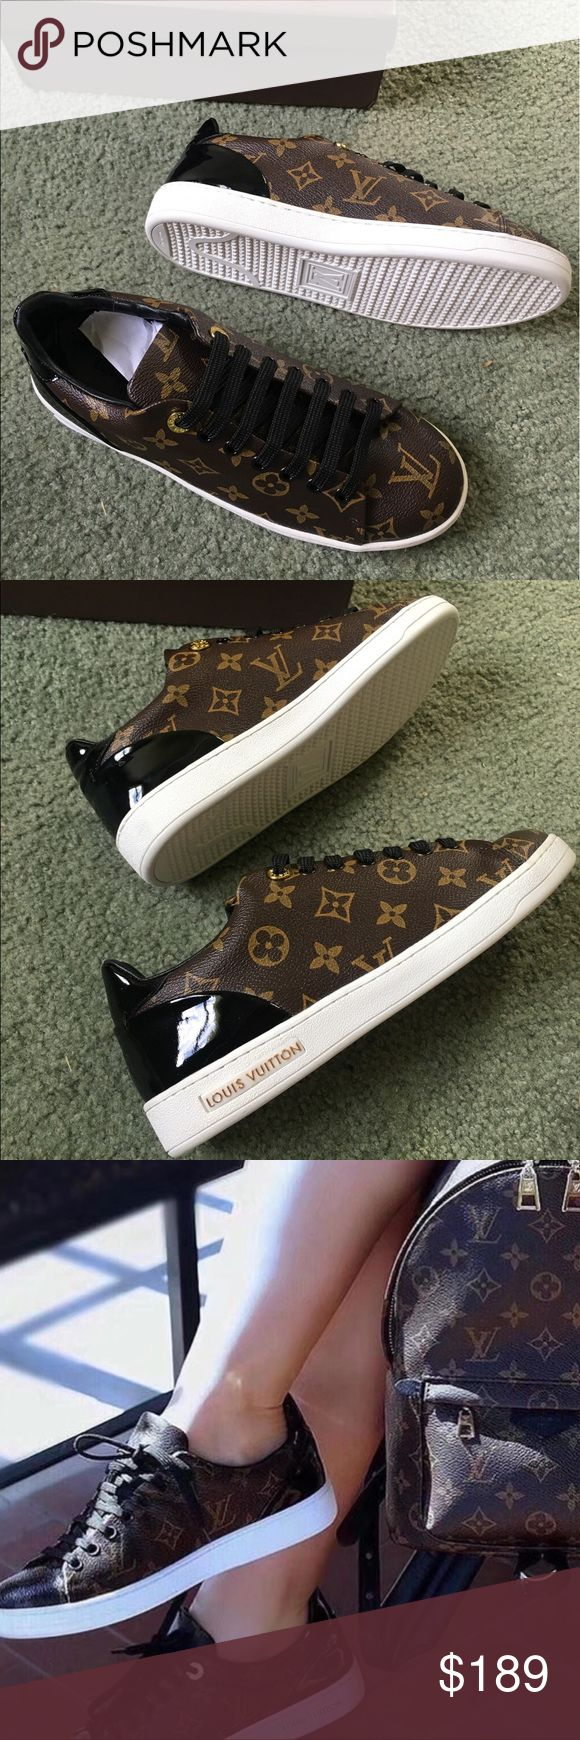 Sneakers New in box. Us 9. Louis Vuitton Shoes Sneakers